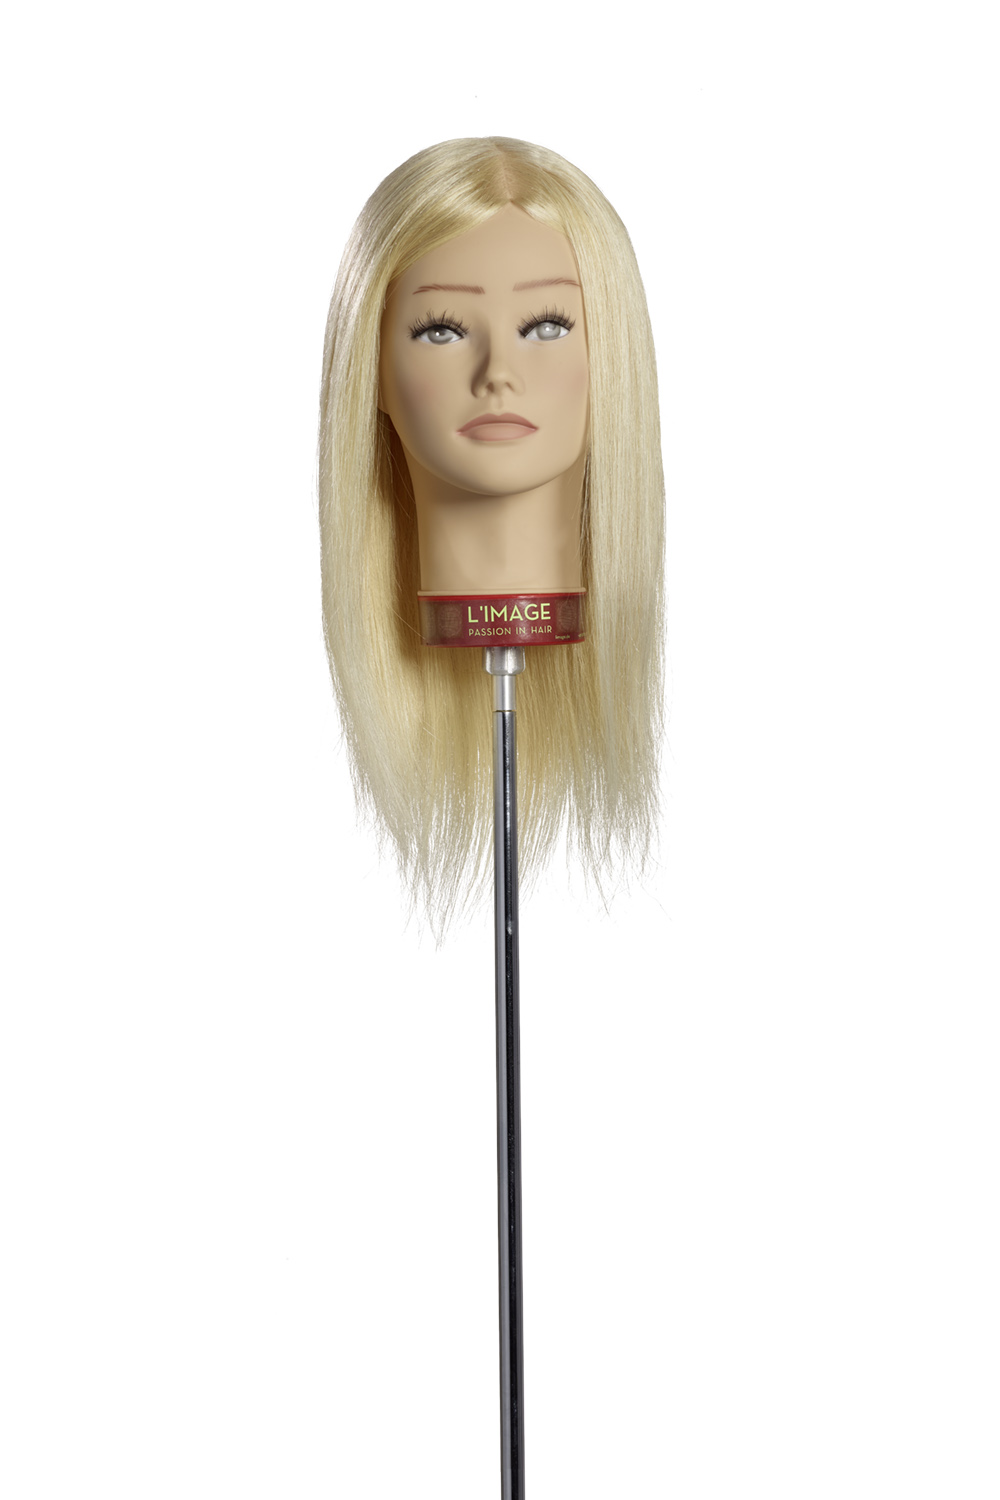 Cap Manechin KATHRIN, 35cm, Par Natural, Blond